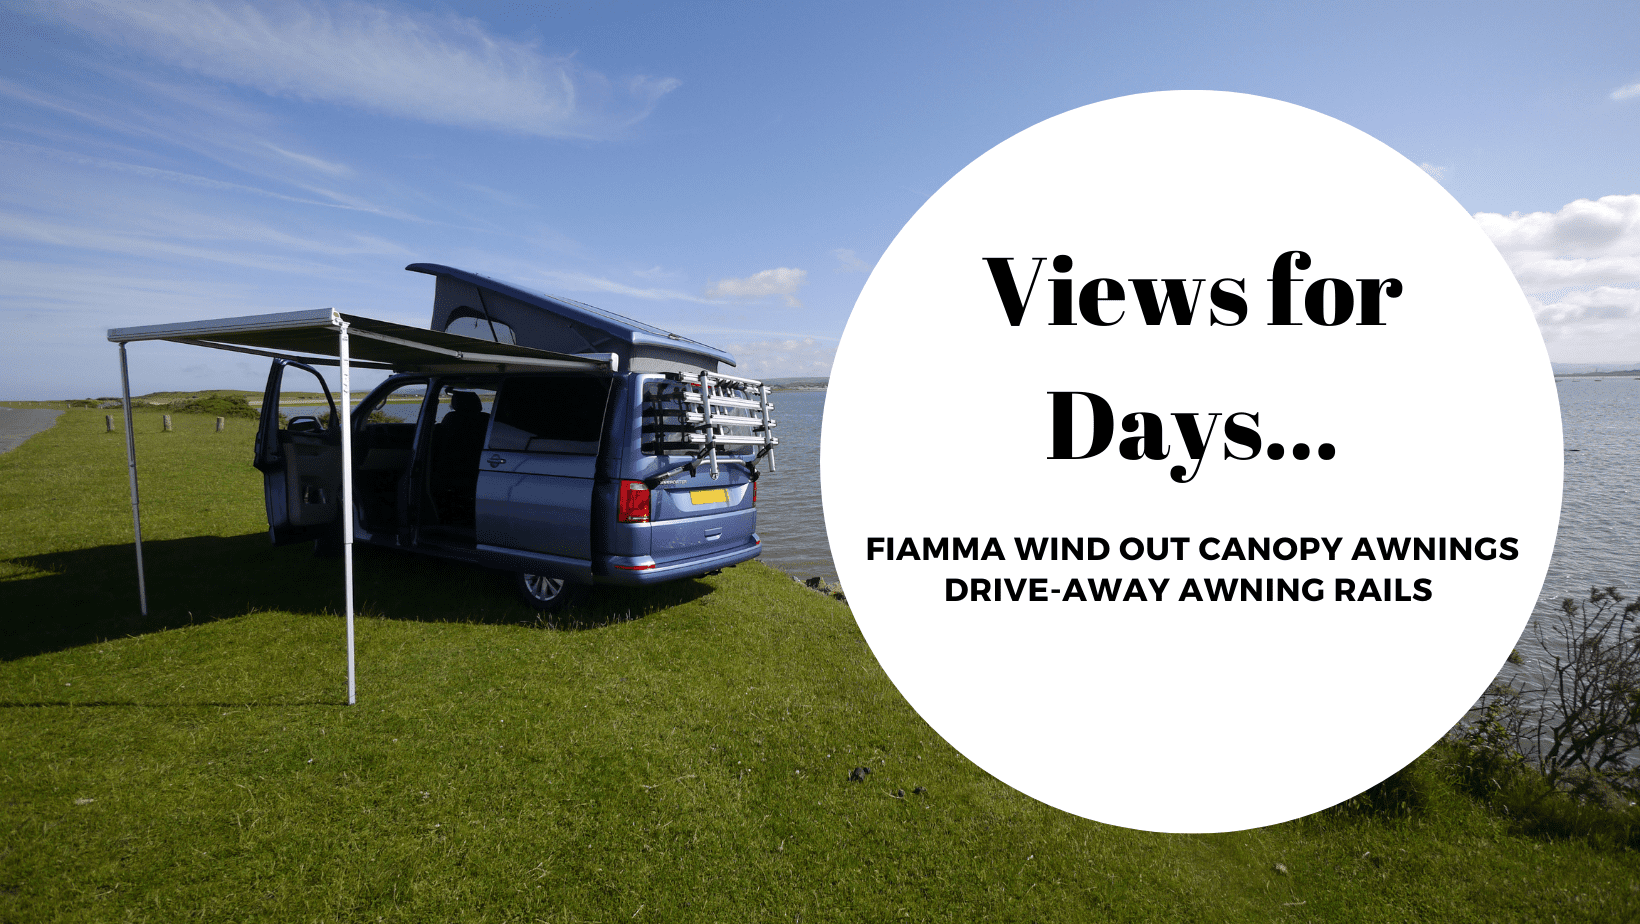 VW Transporter Campervan Fiamma F45s Canopy Awnings and Drive Away Awning Rails